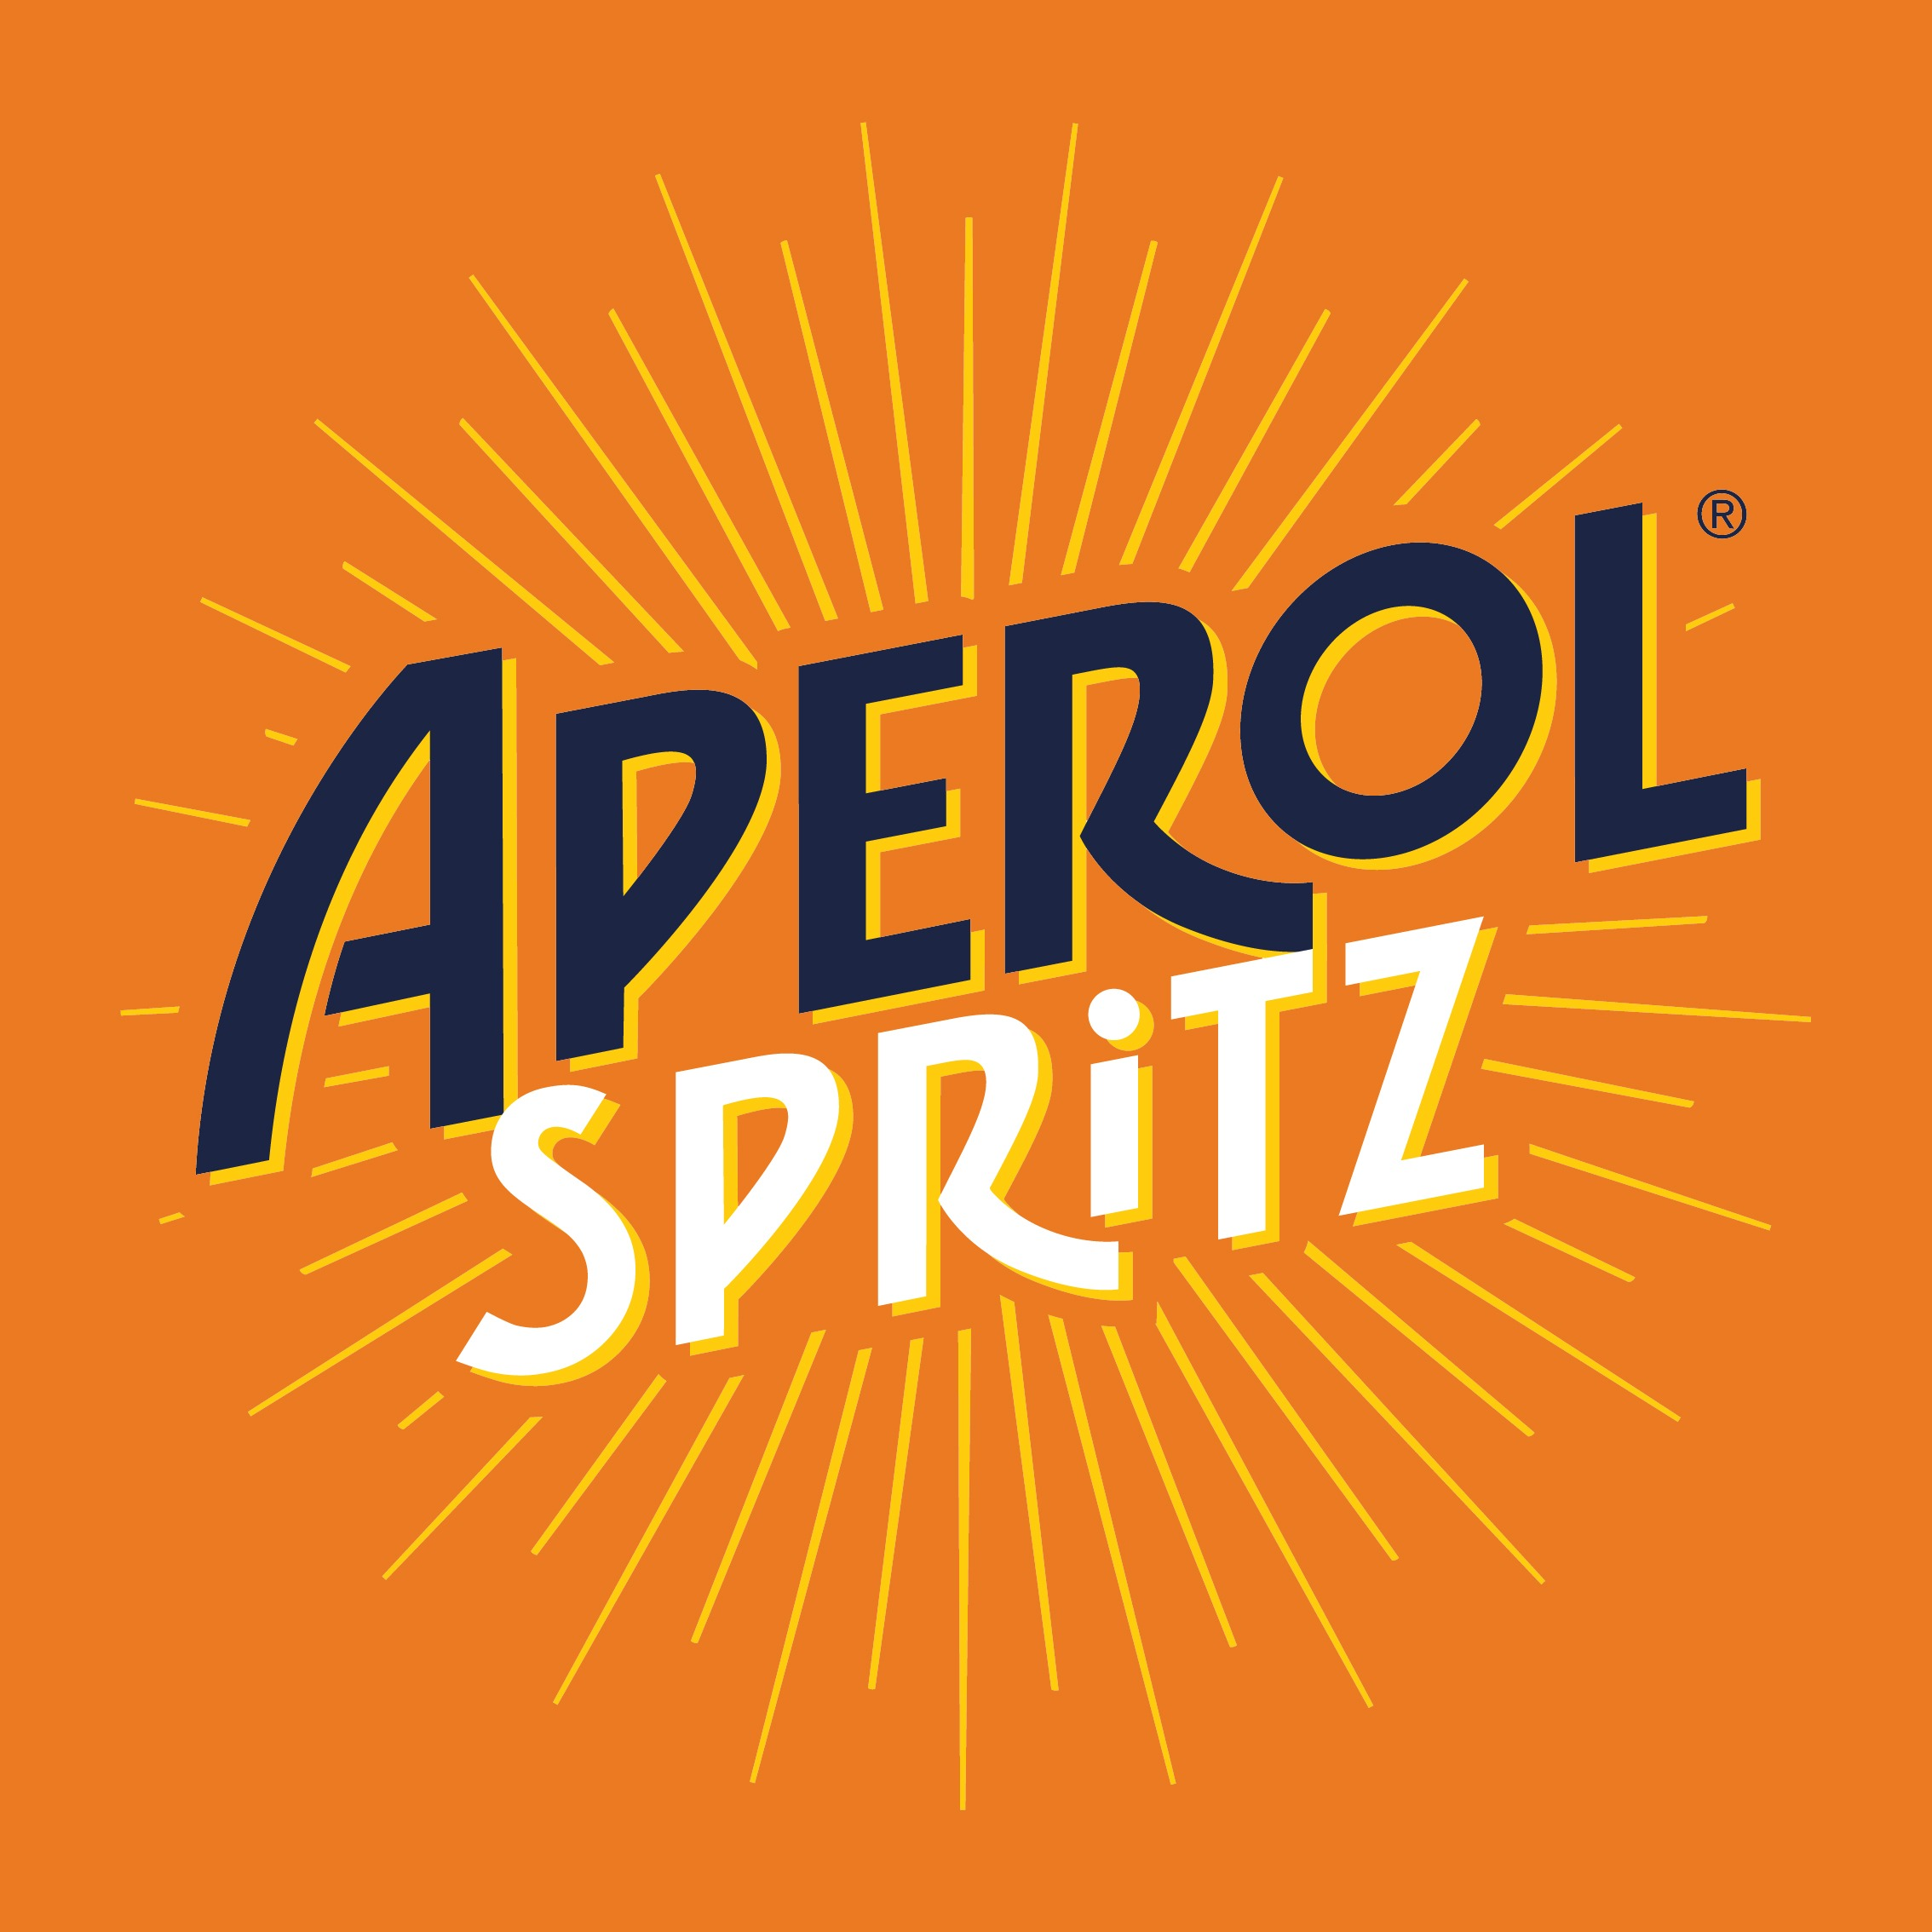 APEROL SPRITZ 3,2,1 EVERYBODY'S WELCOME SUMMER TOUR